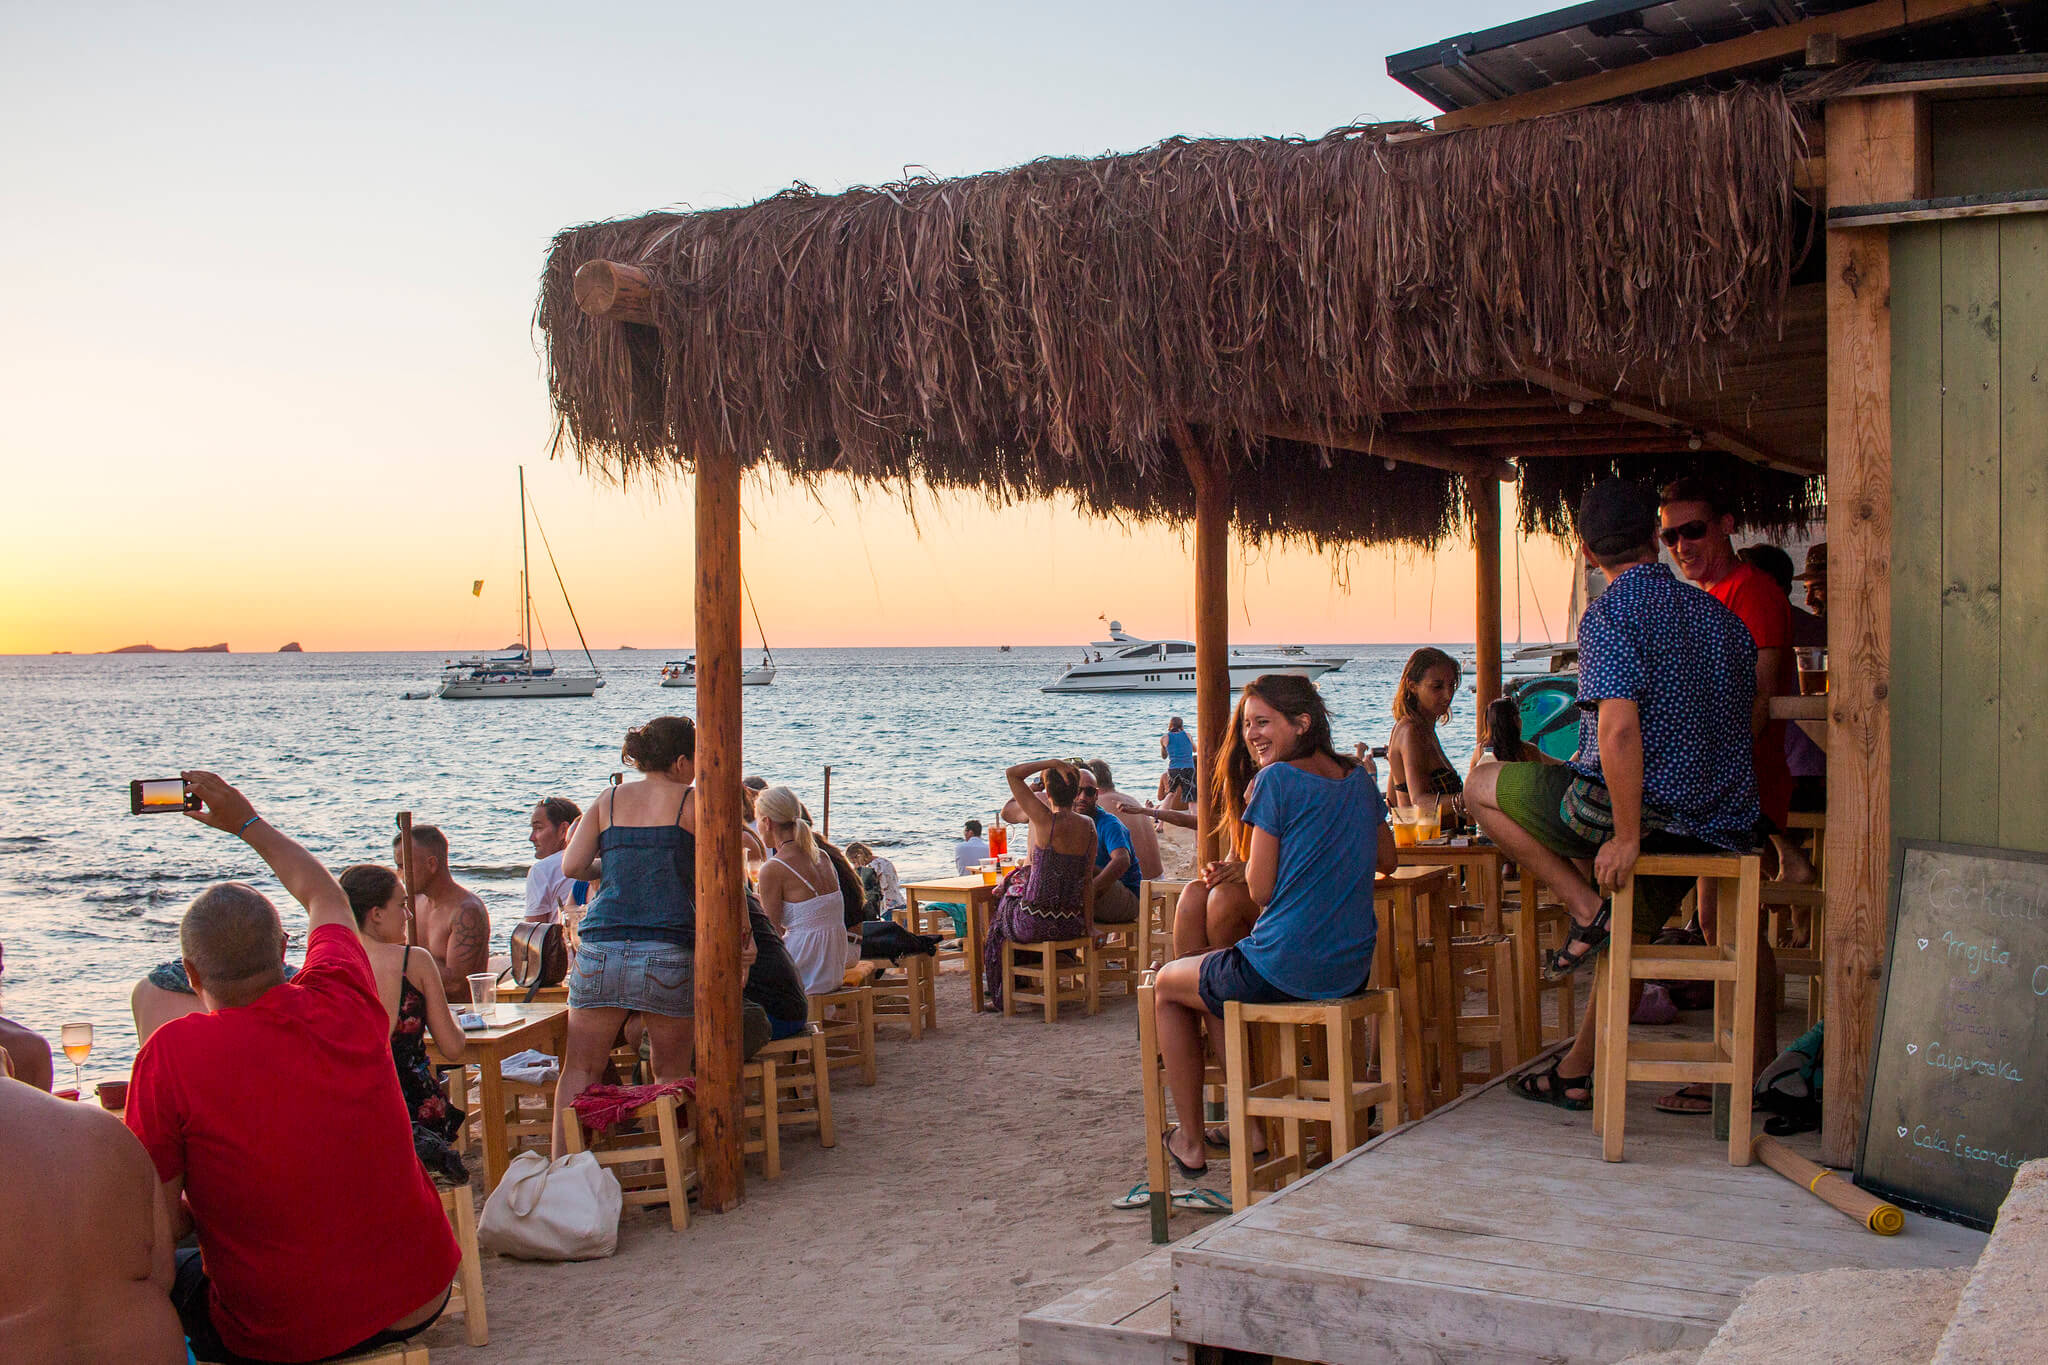 https://www.white-ibiza.com/wp-content/uploads/2020/03/ibiza-sunsets-cala-escondida-02-1.jpg